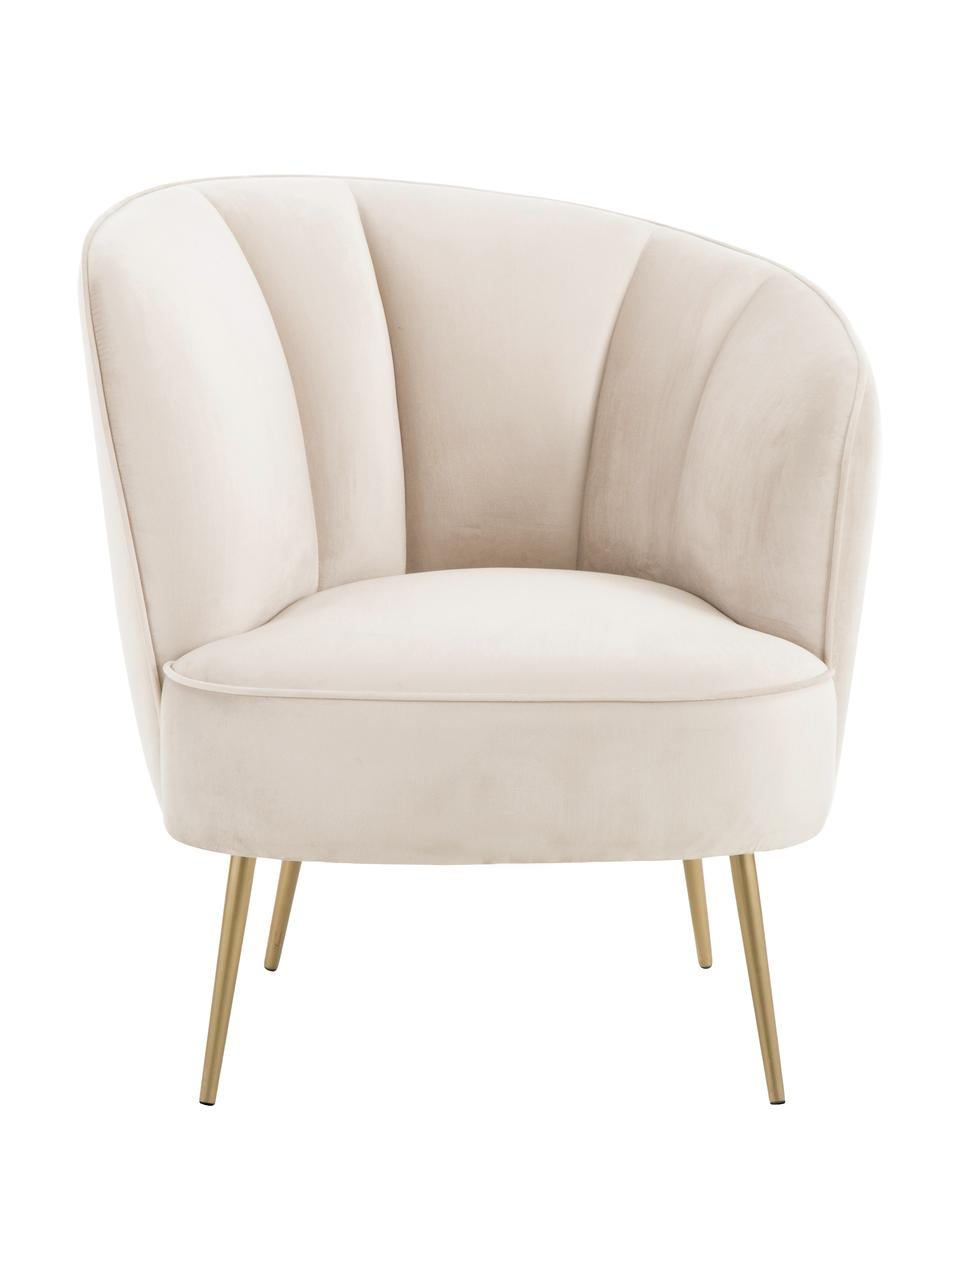 Fauteuil cocktail en velours beige Louise, Velours beige